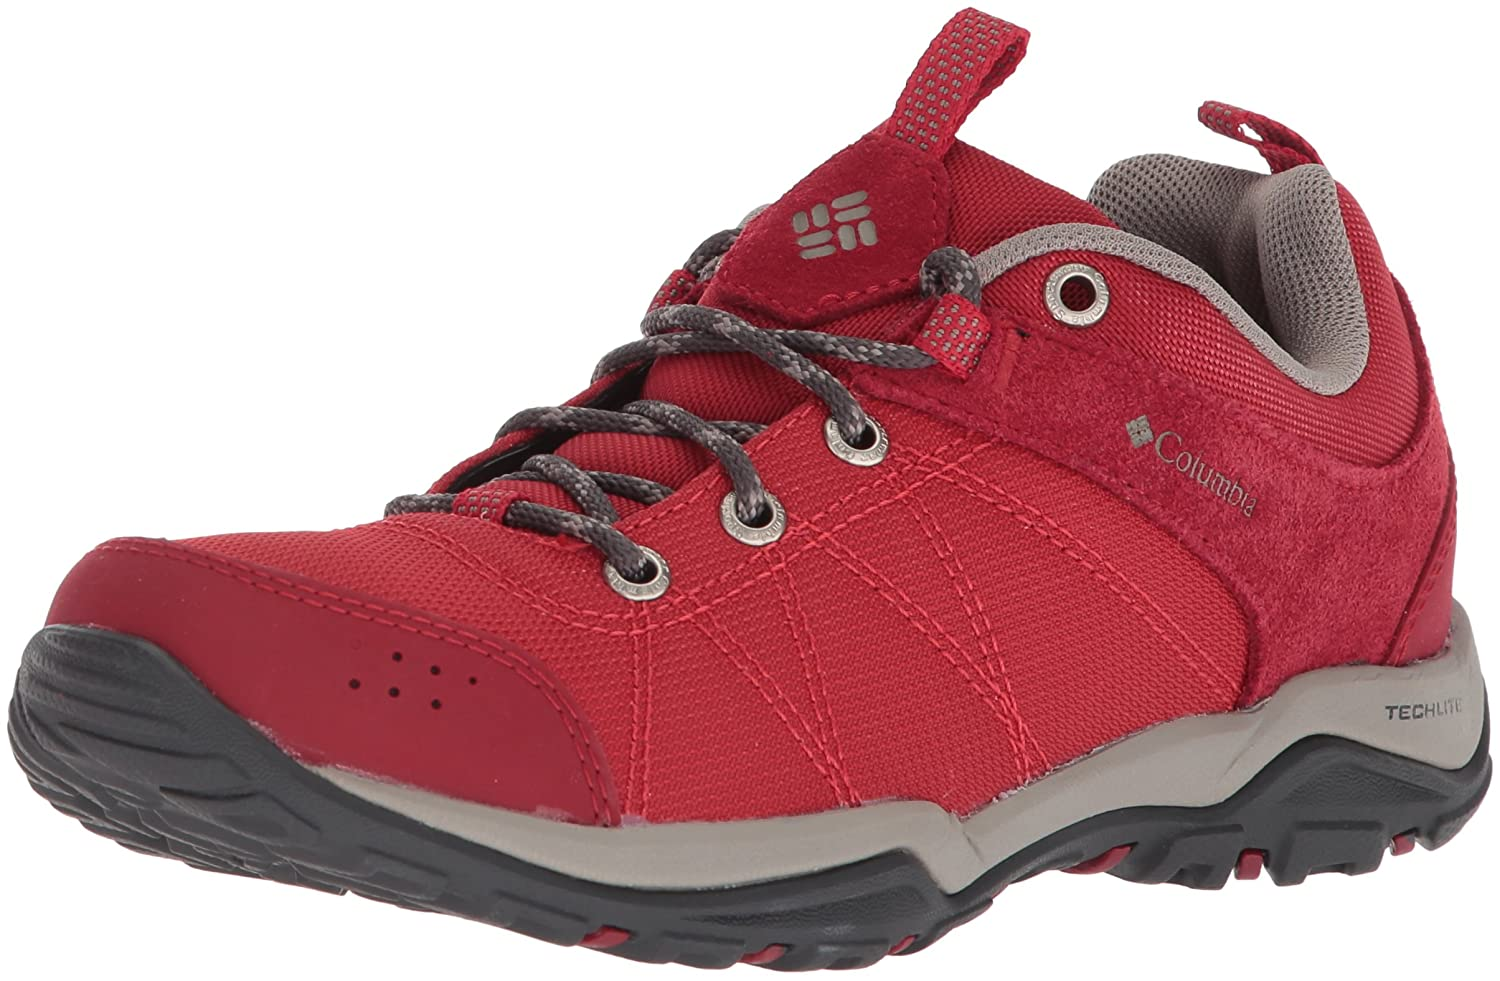 Columbia Women's Fire Venture Textile Hiking Boot B073RN5579 6 B(M) US Mountain Red, Kettle